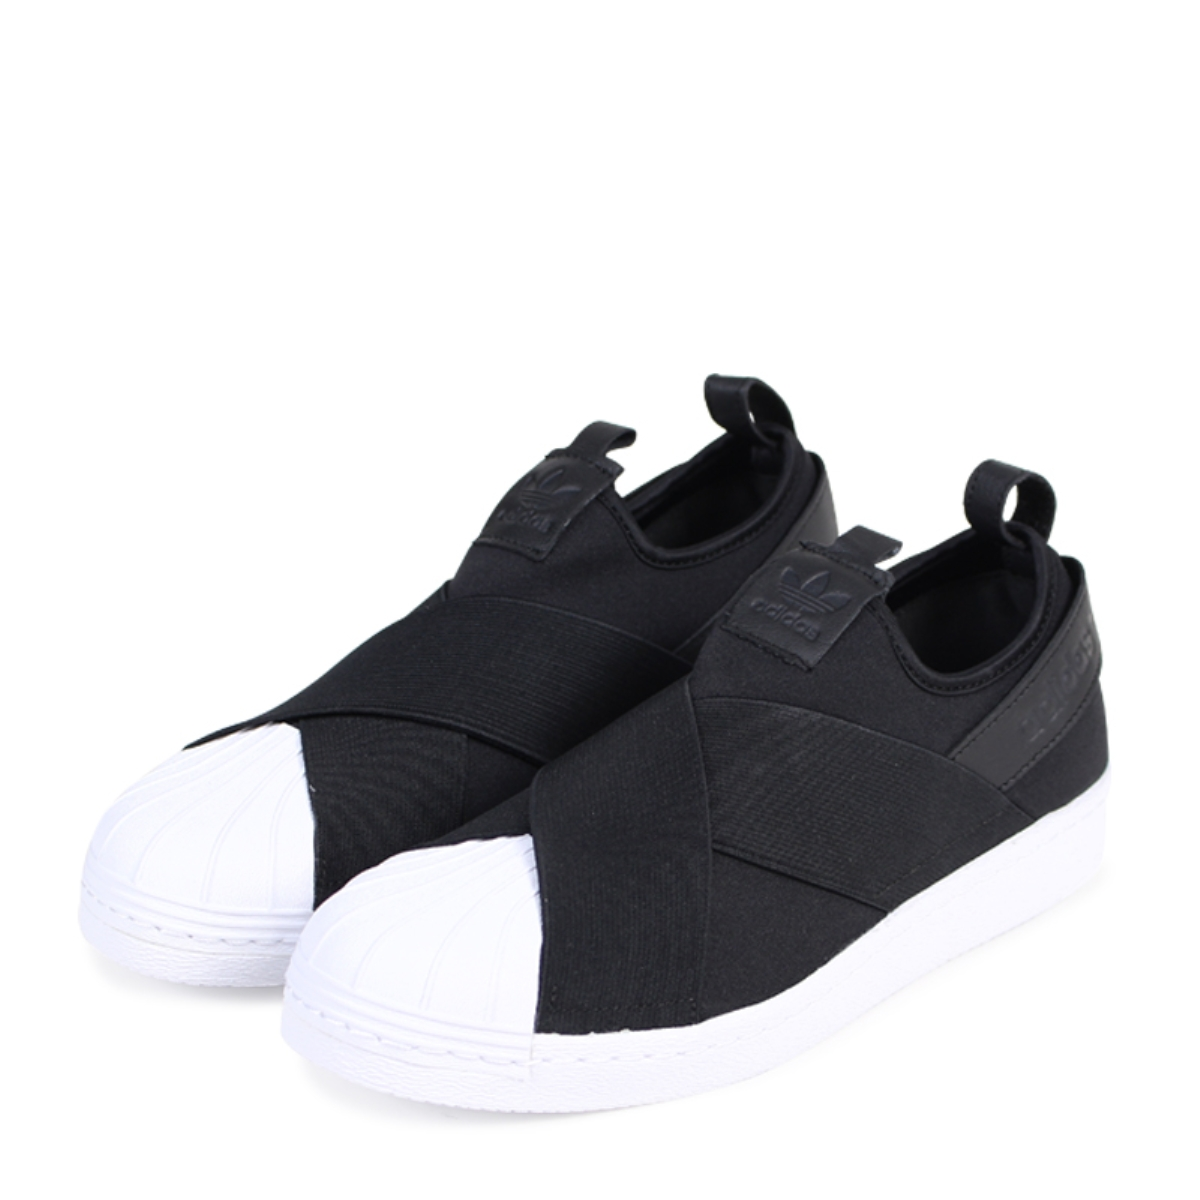 0073cc092 adidas Originals SUPERSTAR SLIP-ON Adidas superstar sneakers slip-ons men  gap Dis BZ0112 black originals  1 30 Shinnyu load   181